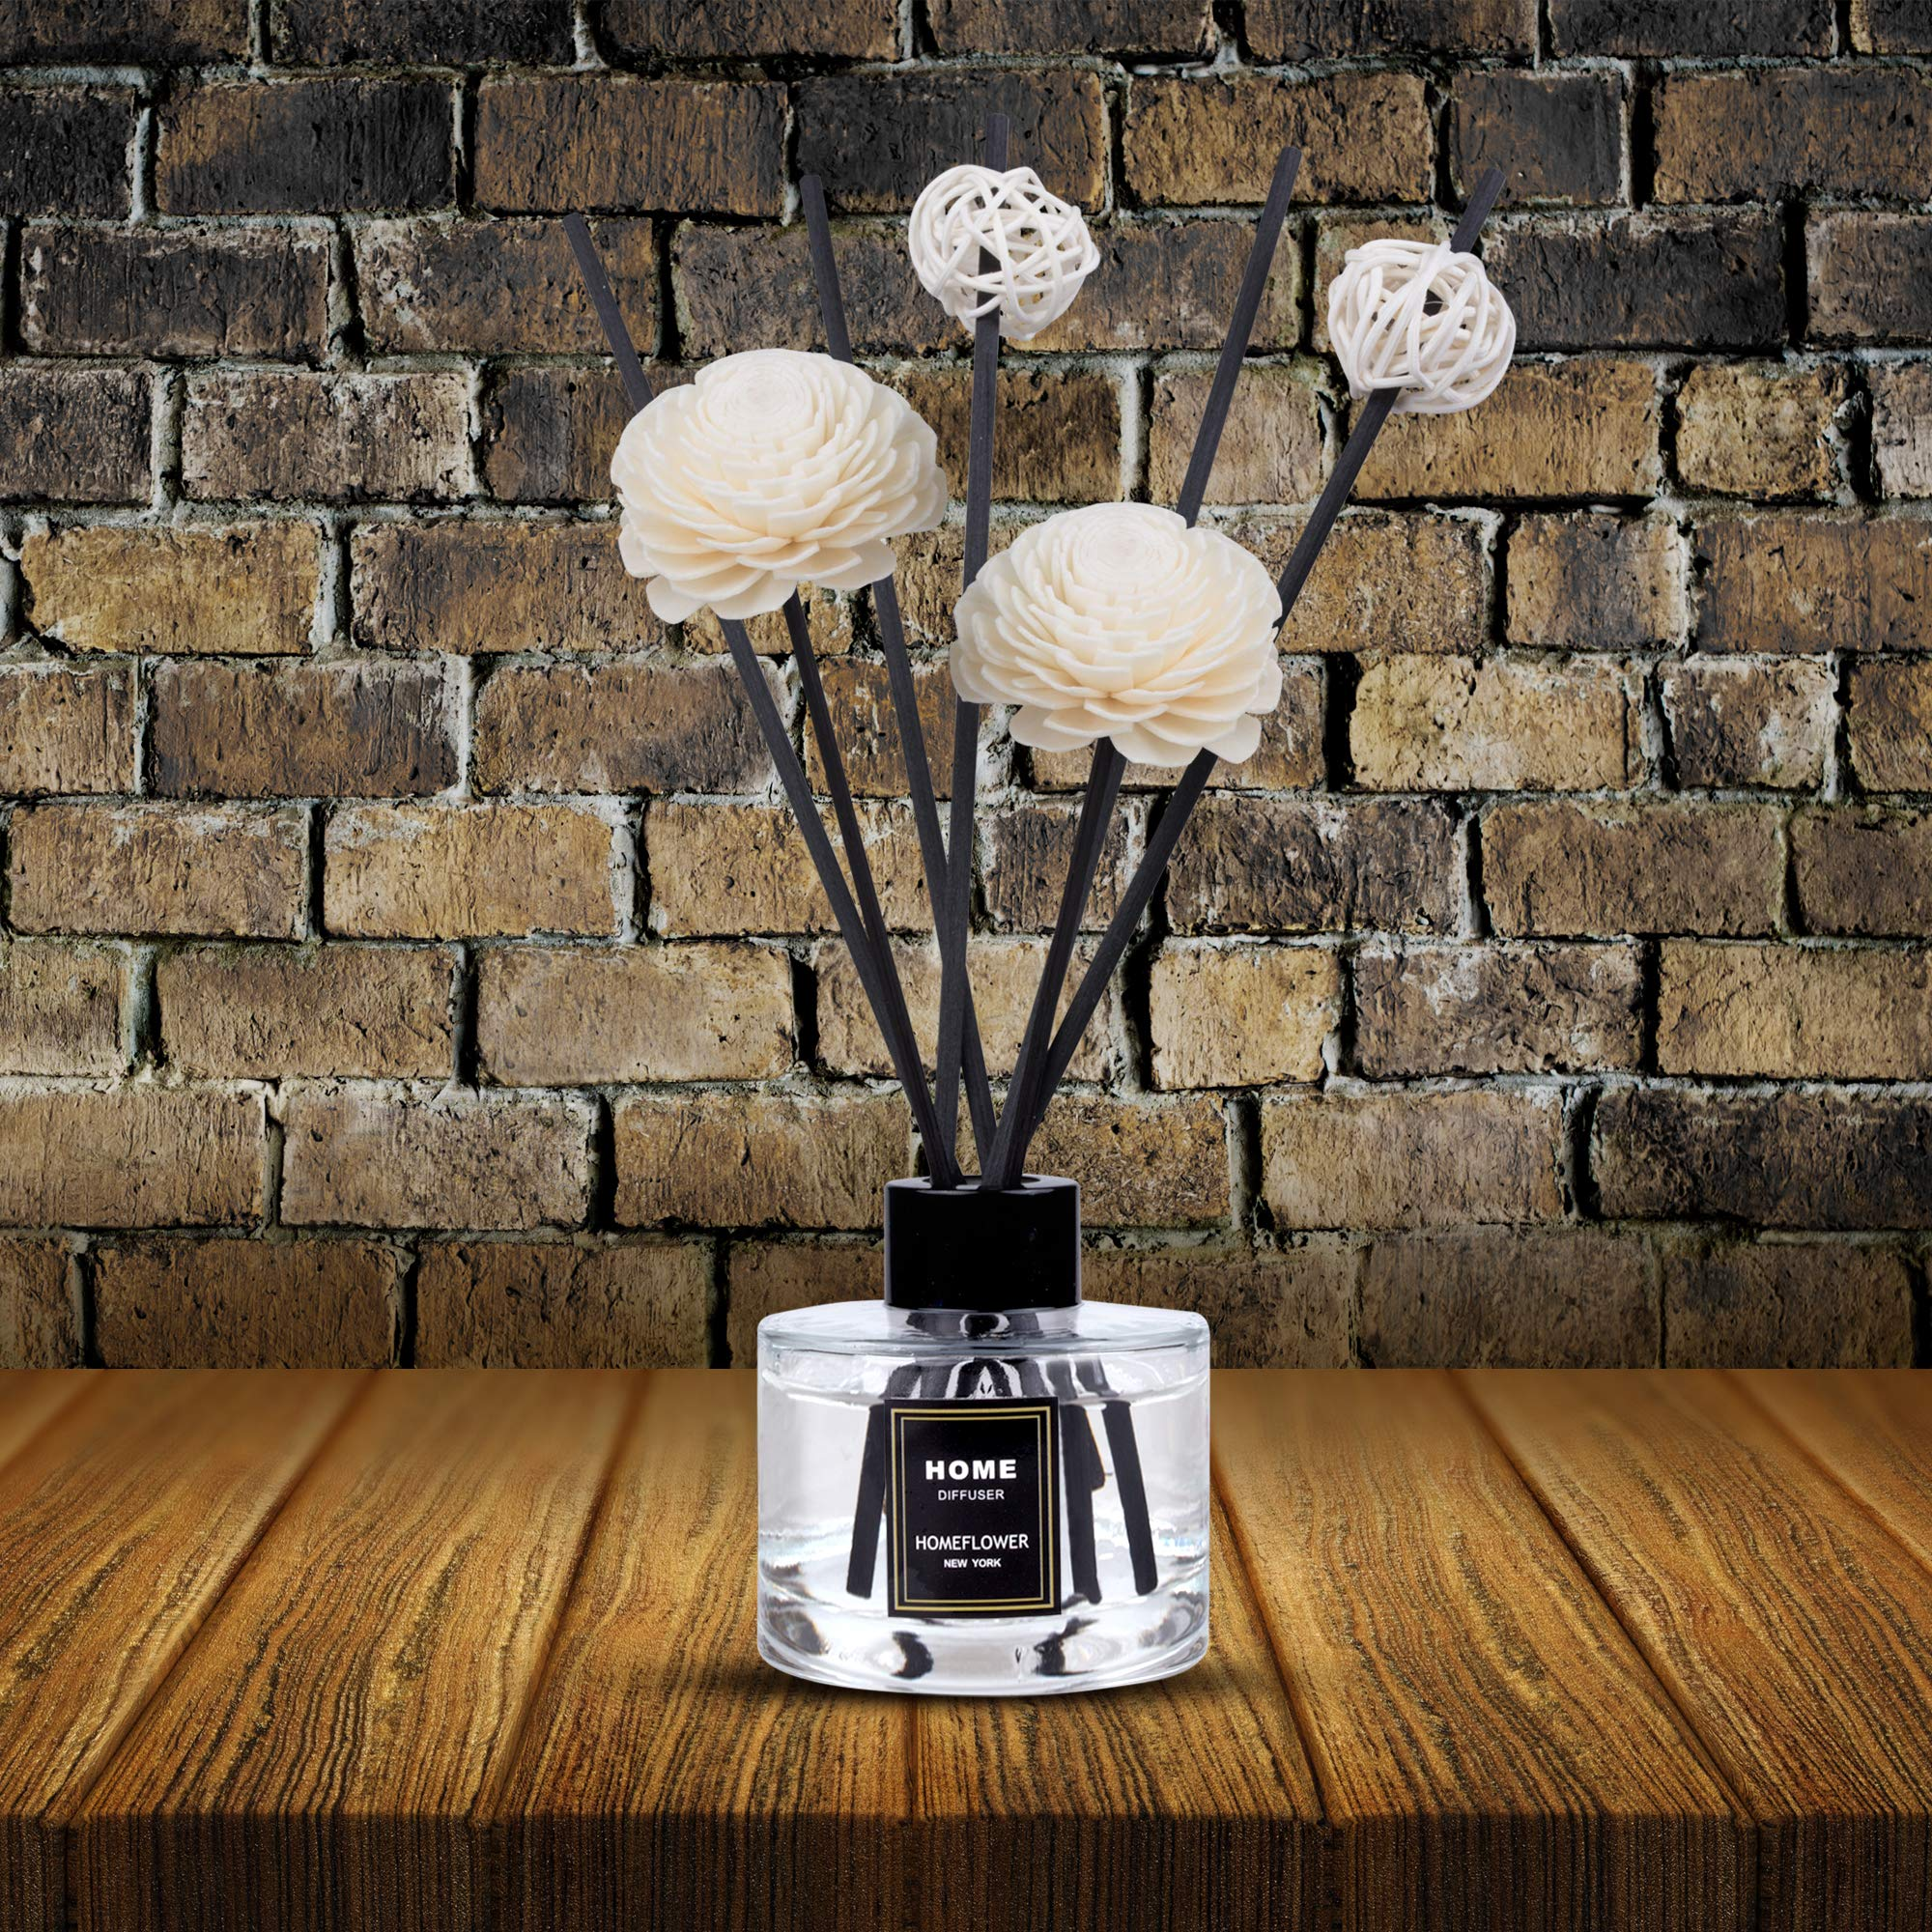 HomeFlower Reed Diffuser Set Lavender: Scent Sticks & Sola Flowers Included - Scented Liquid Fragrance Oil - Room Diffusers for Home or Bathroom - Made with FreshScent Premium Essential Oils - 4 oz by HomeFlower (Image #7)